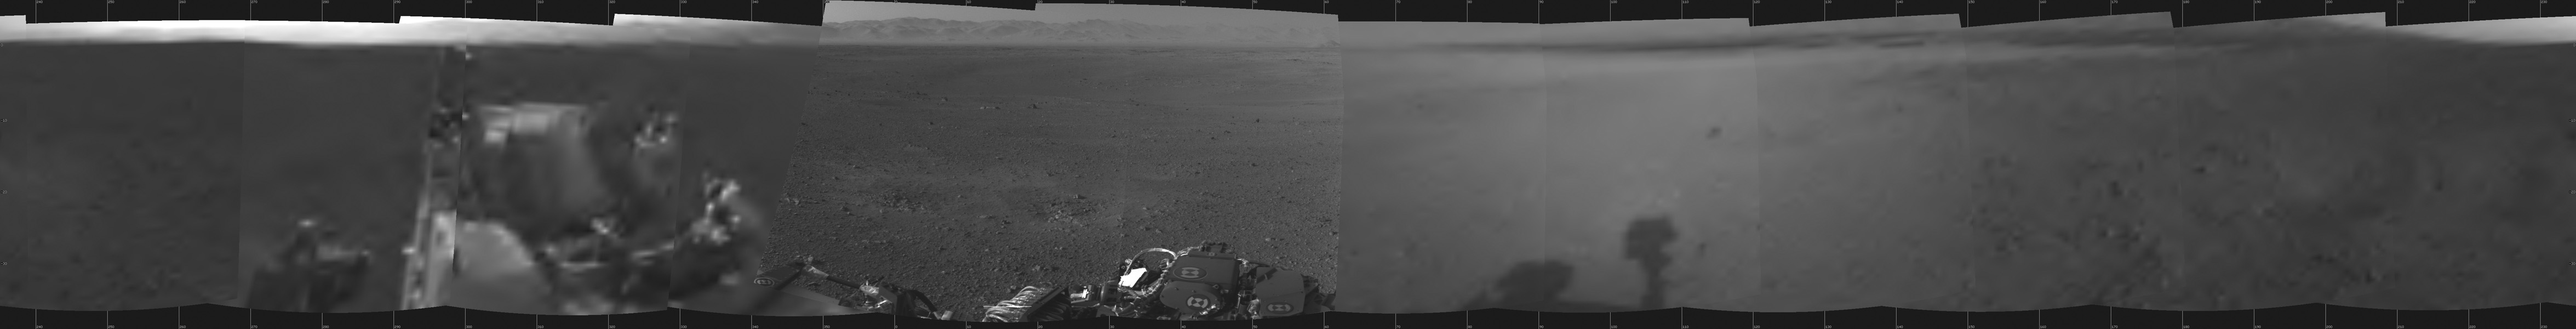 This is the first 360-degree panoramic view from NASA's Curiosity rover, taken with the Navigation cameras. Mount Sharp is to the right, and the north Gale Crater rim can be seen at center. The rover's body is in the foreground.